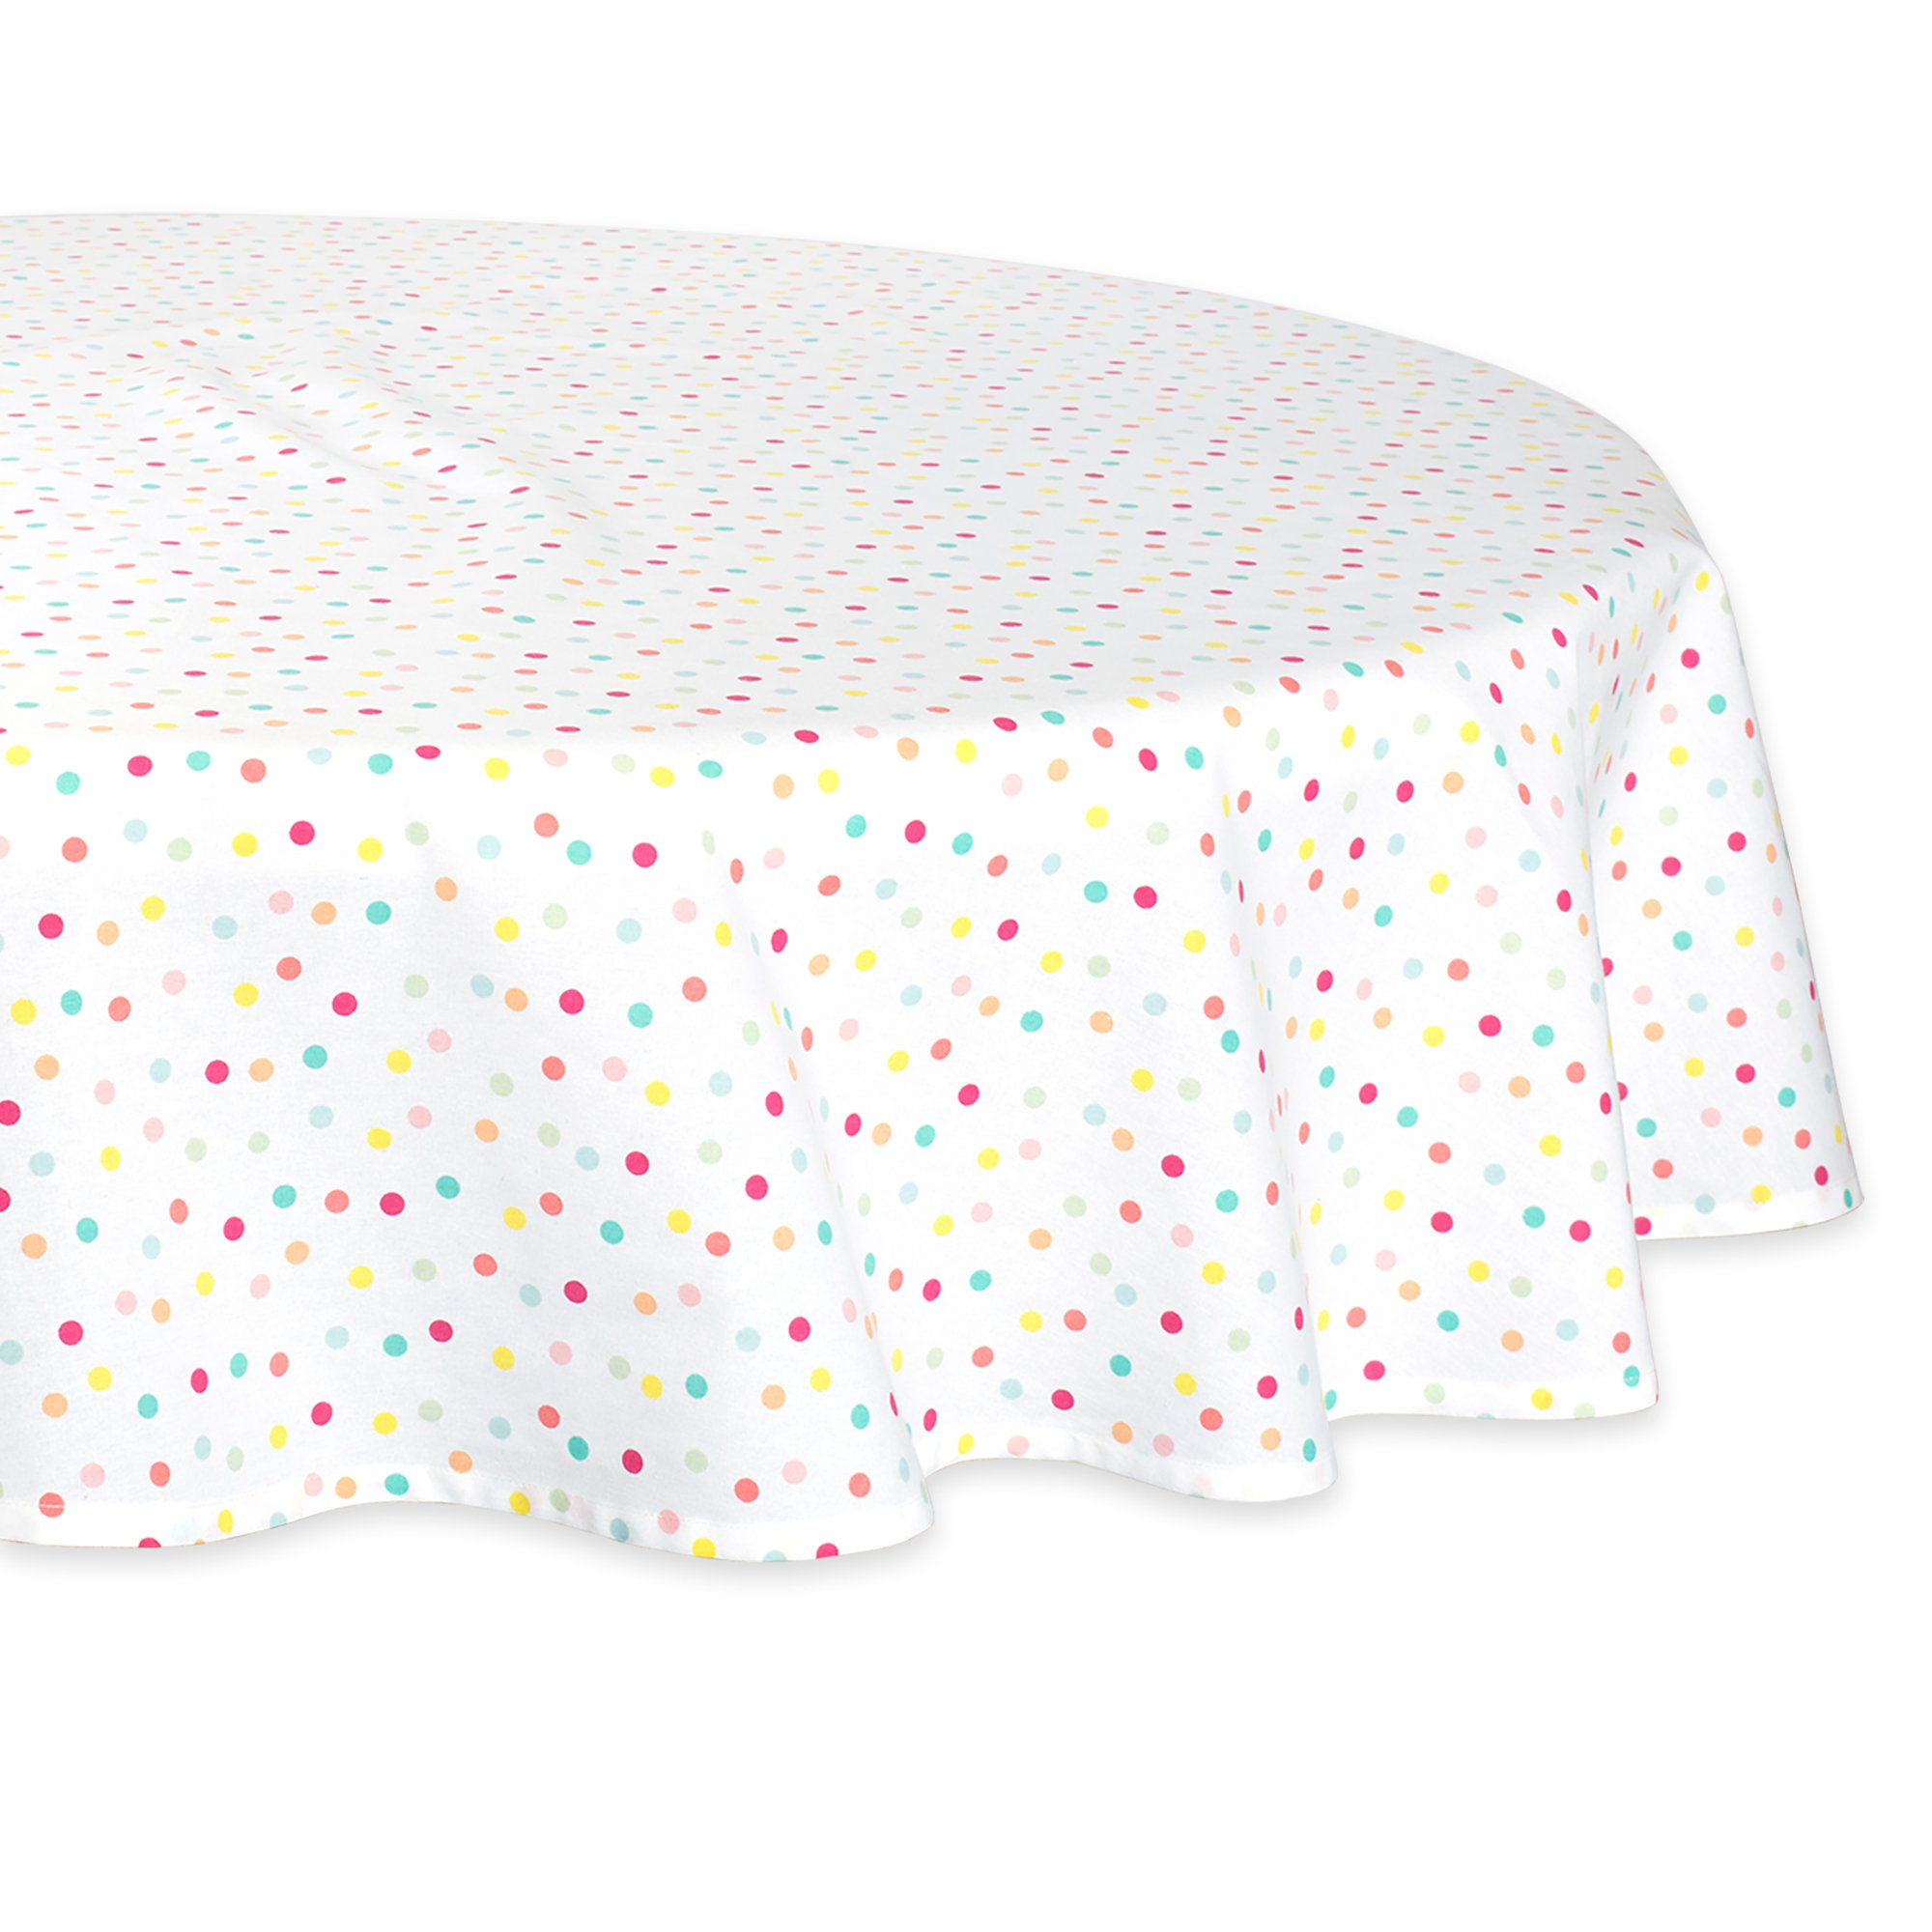 DII Round Cotton Tablecloth for Spring Wedding, Birthday Party, Baby Shower, Easter and Everyday Use - 70'' Round, Multi Polka Dots